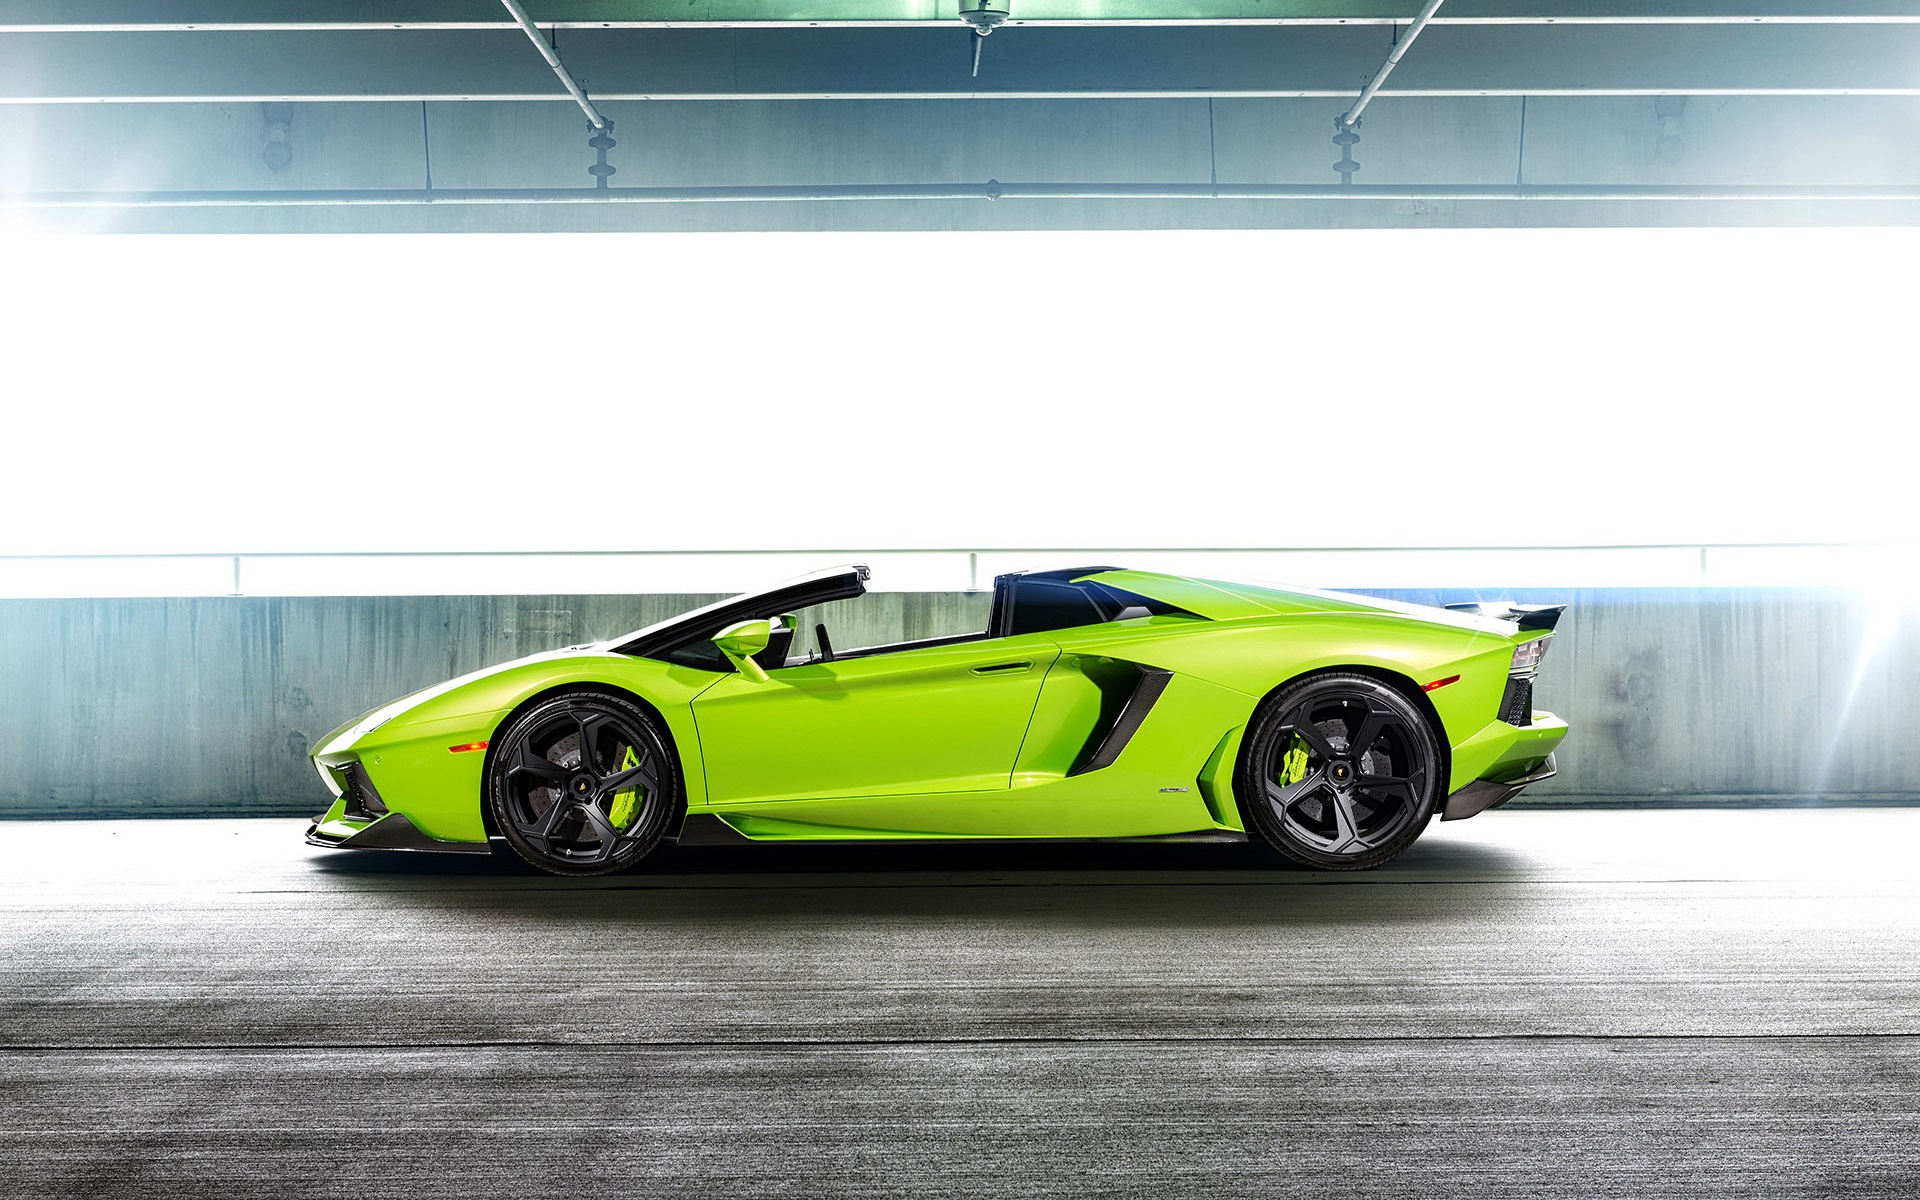 Wallpaper lamborghini aventador lp 740 green supercar side view 1920x1200 hd picture image - Car side view wallpaper ...